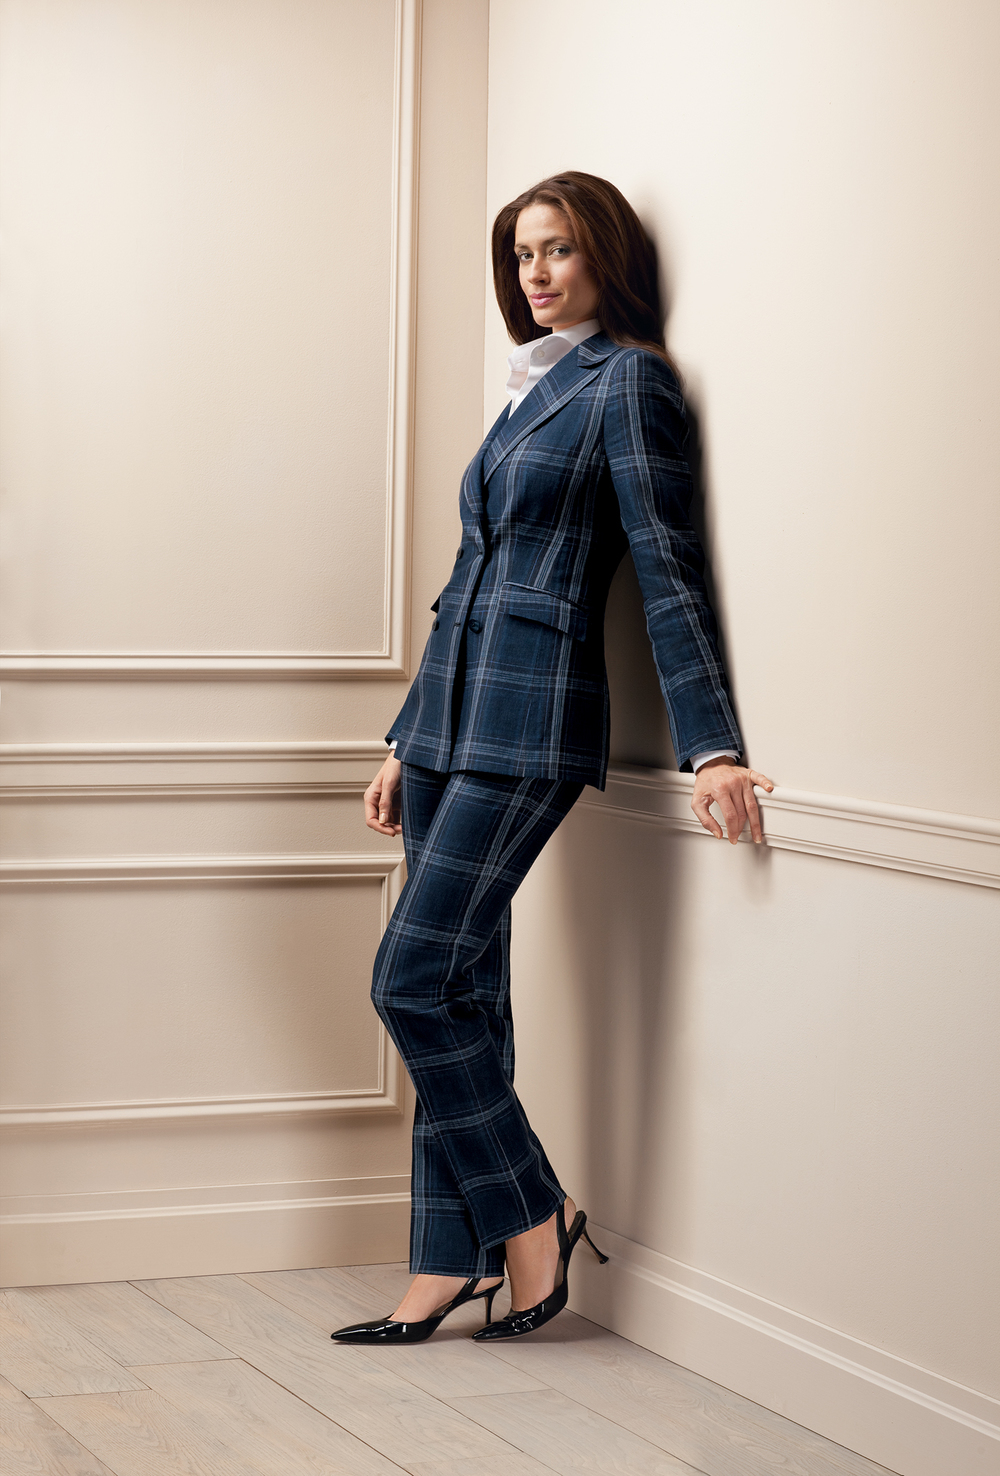 PS_girlnavyplaid-042.jpg